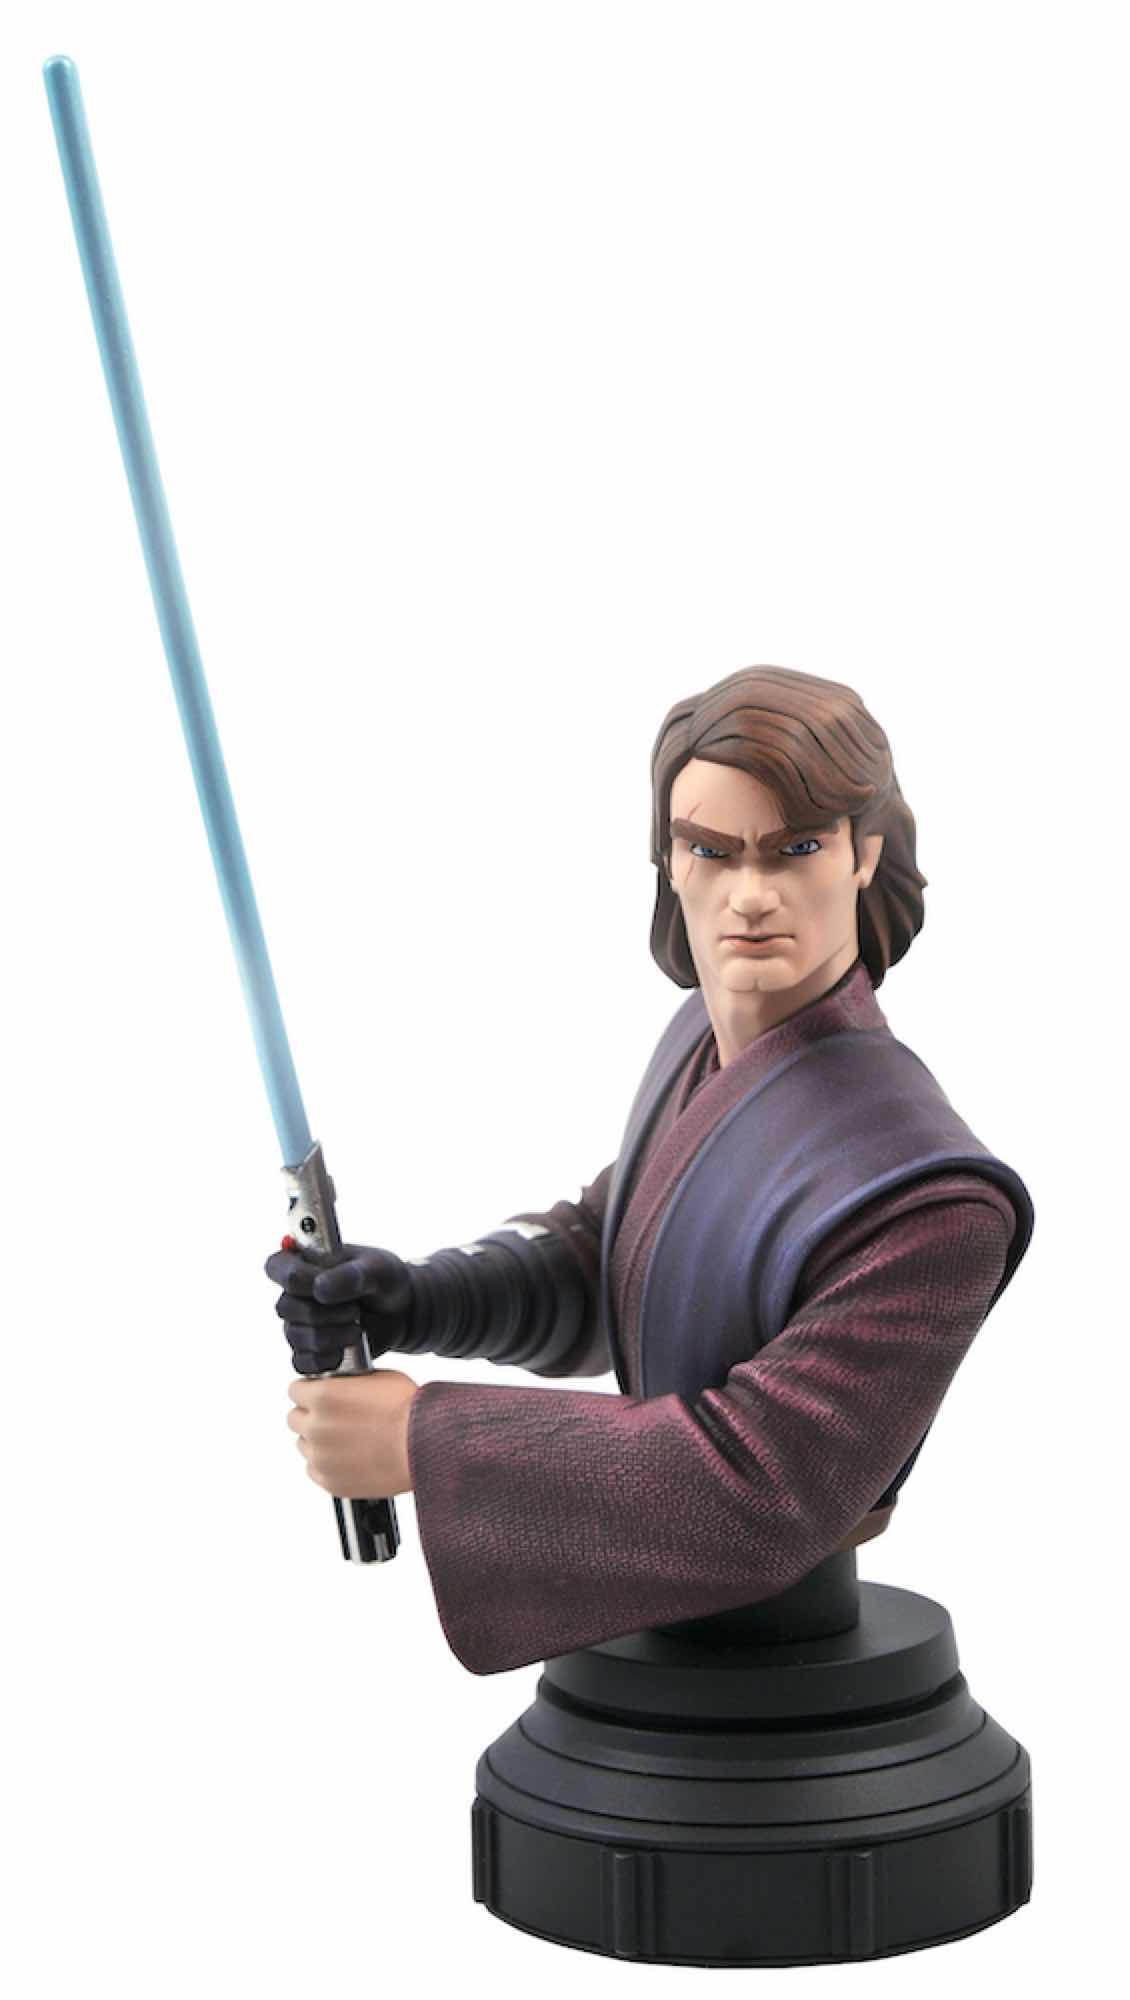 ANAKIN SKYWALKER BUSTO RESINA 15 CM 1/7 SCALE STAR WARS THE CLONE WARS